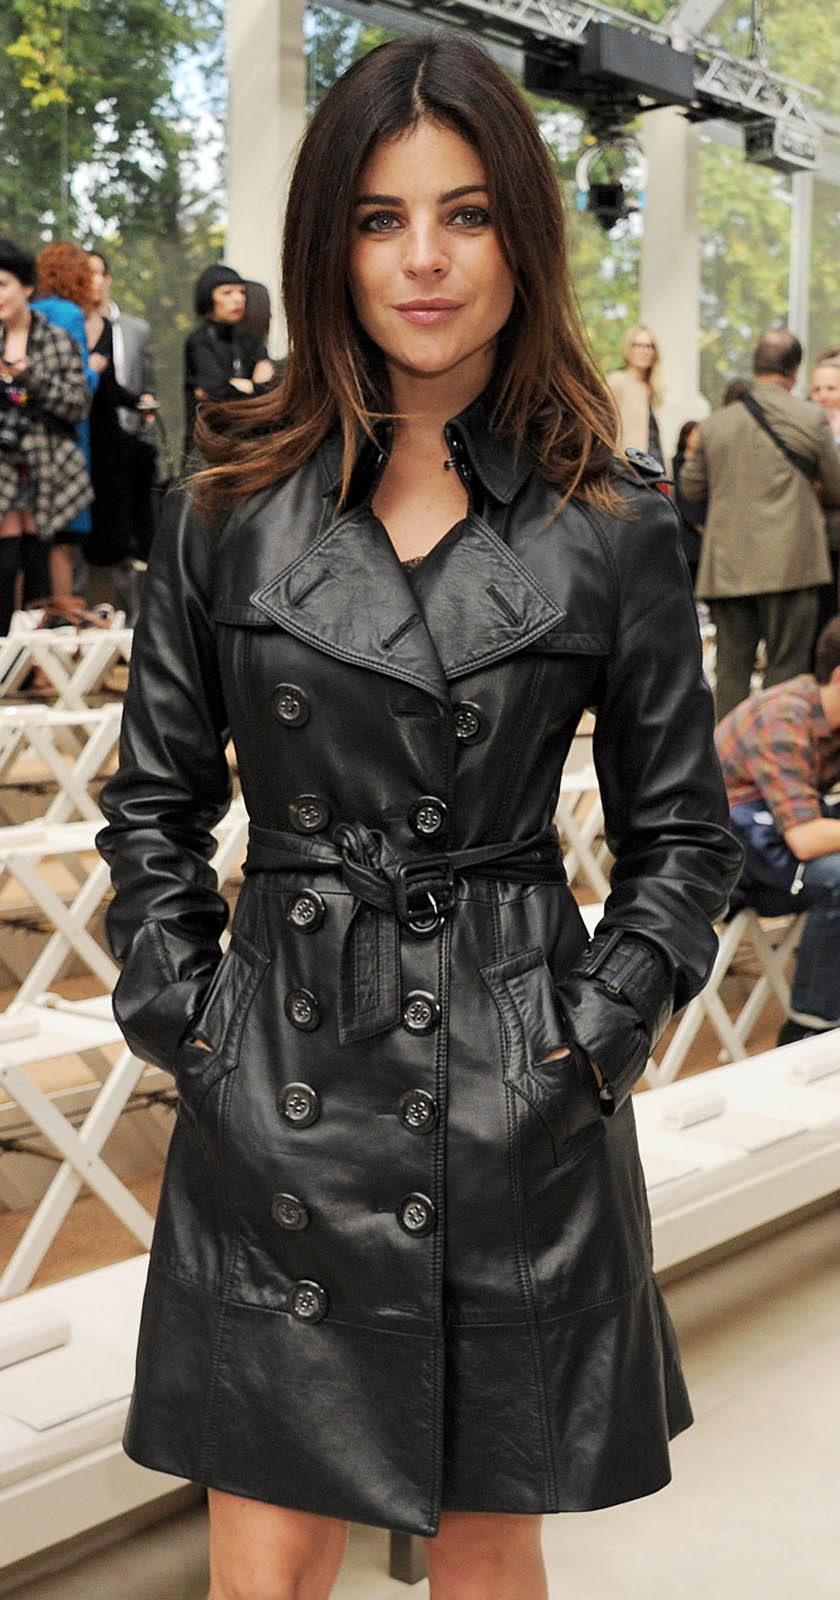 detail-classic-style-type-trench-coat-black-simple.jpg